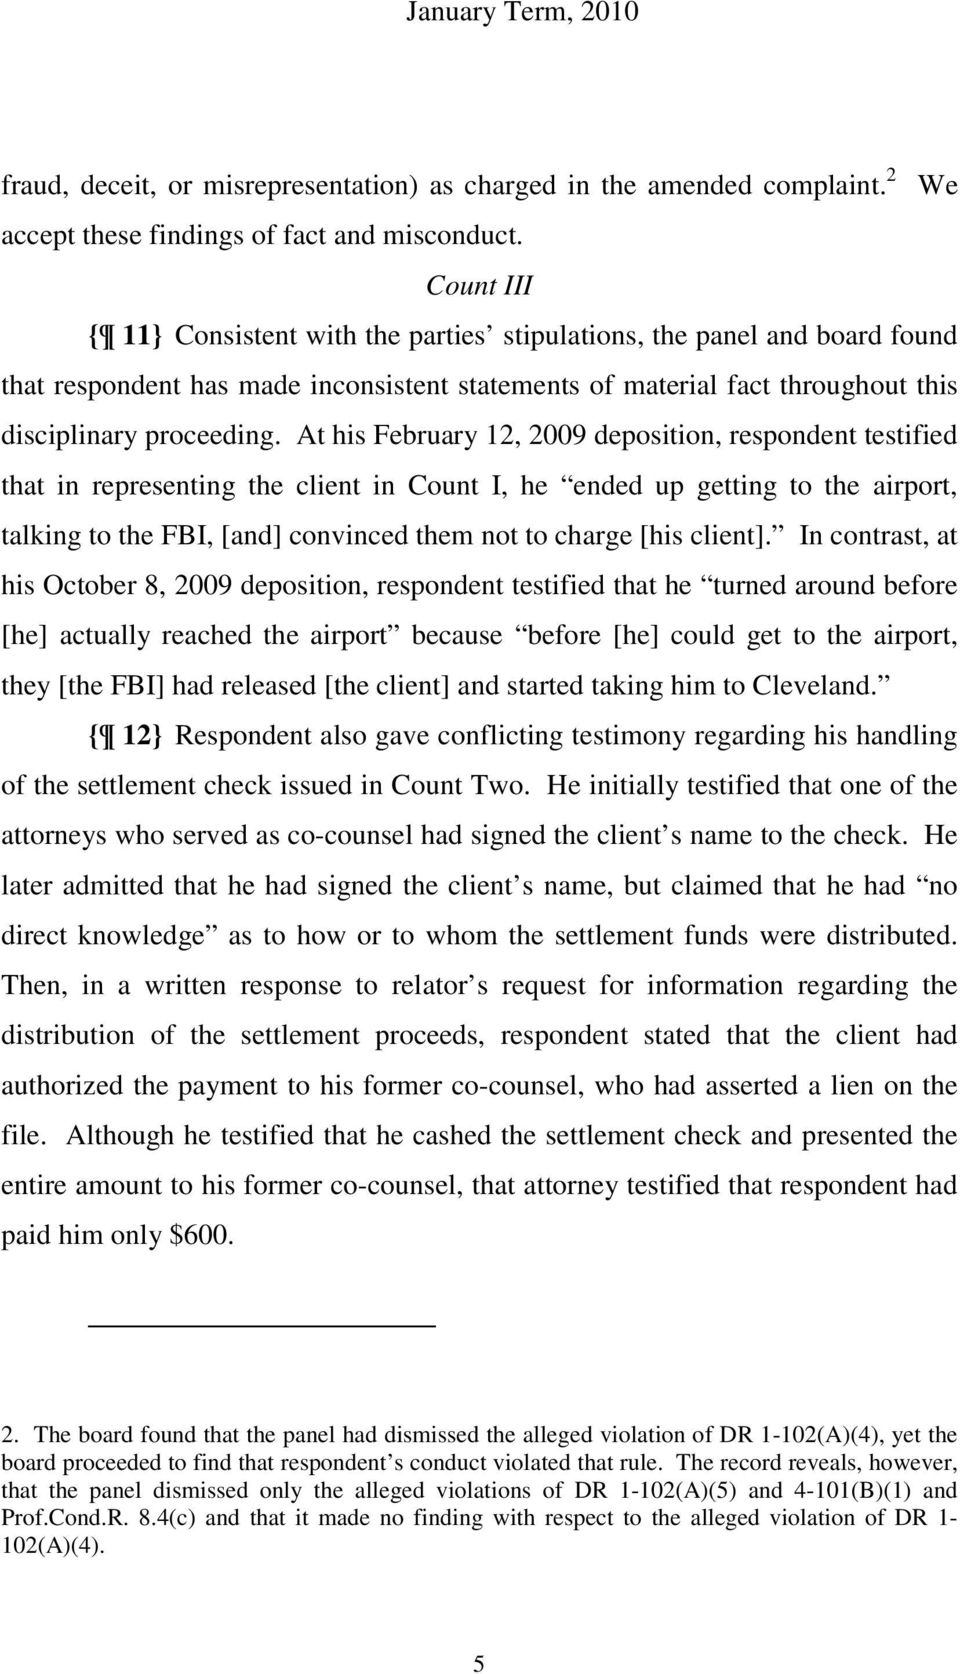 At his February 12, 2009 deposition, respondent testified that in representing the client in Count I, he ended up getting to the airport, talking to the FBI, [and] convinced them not to charge [his